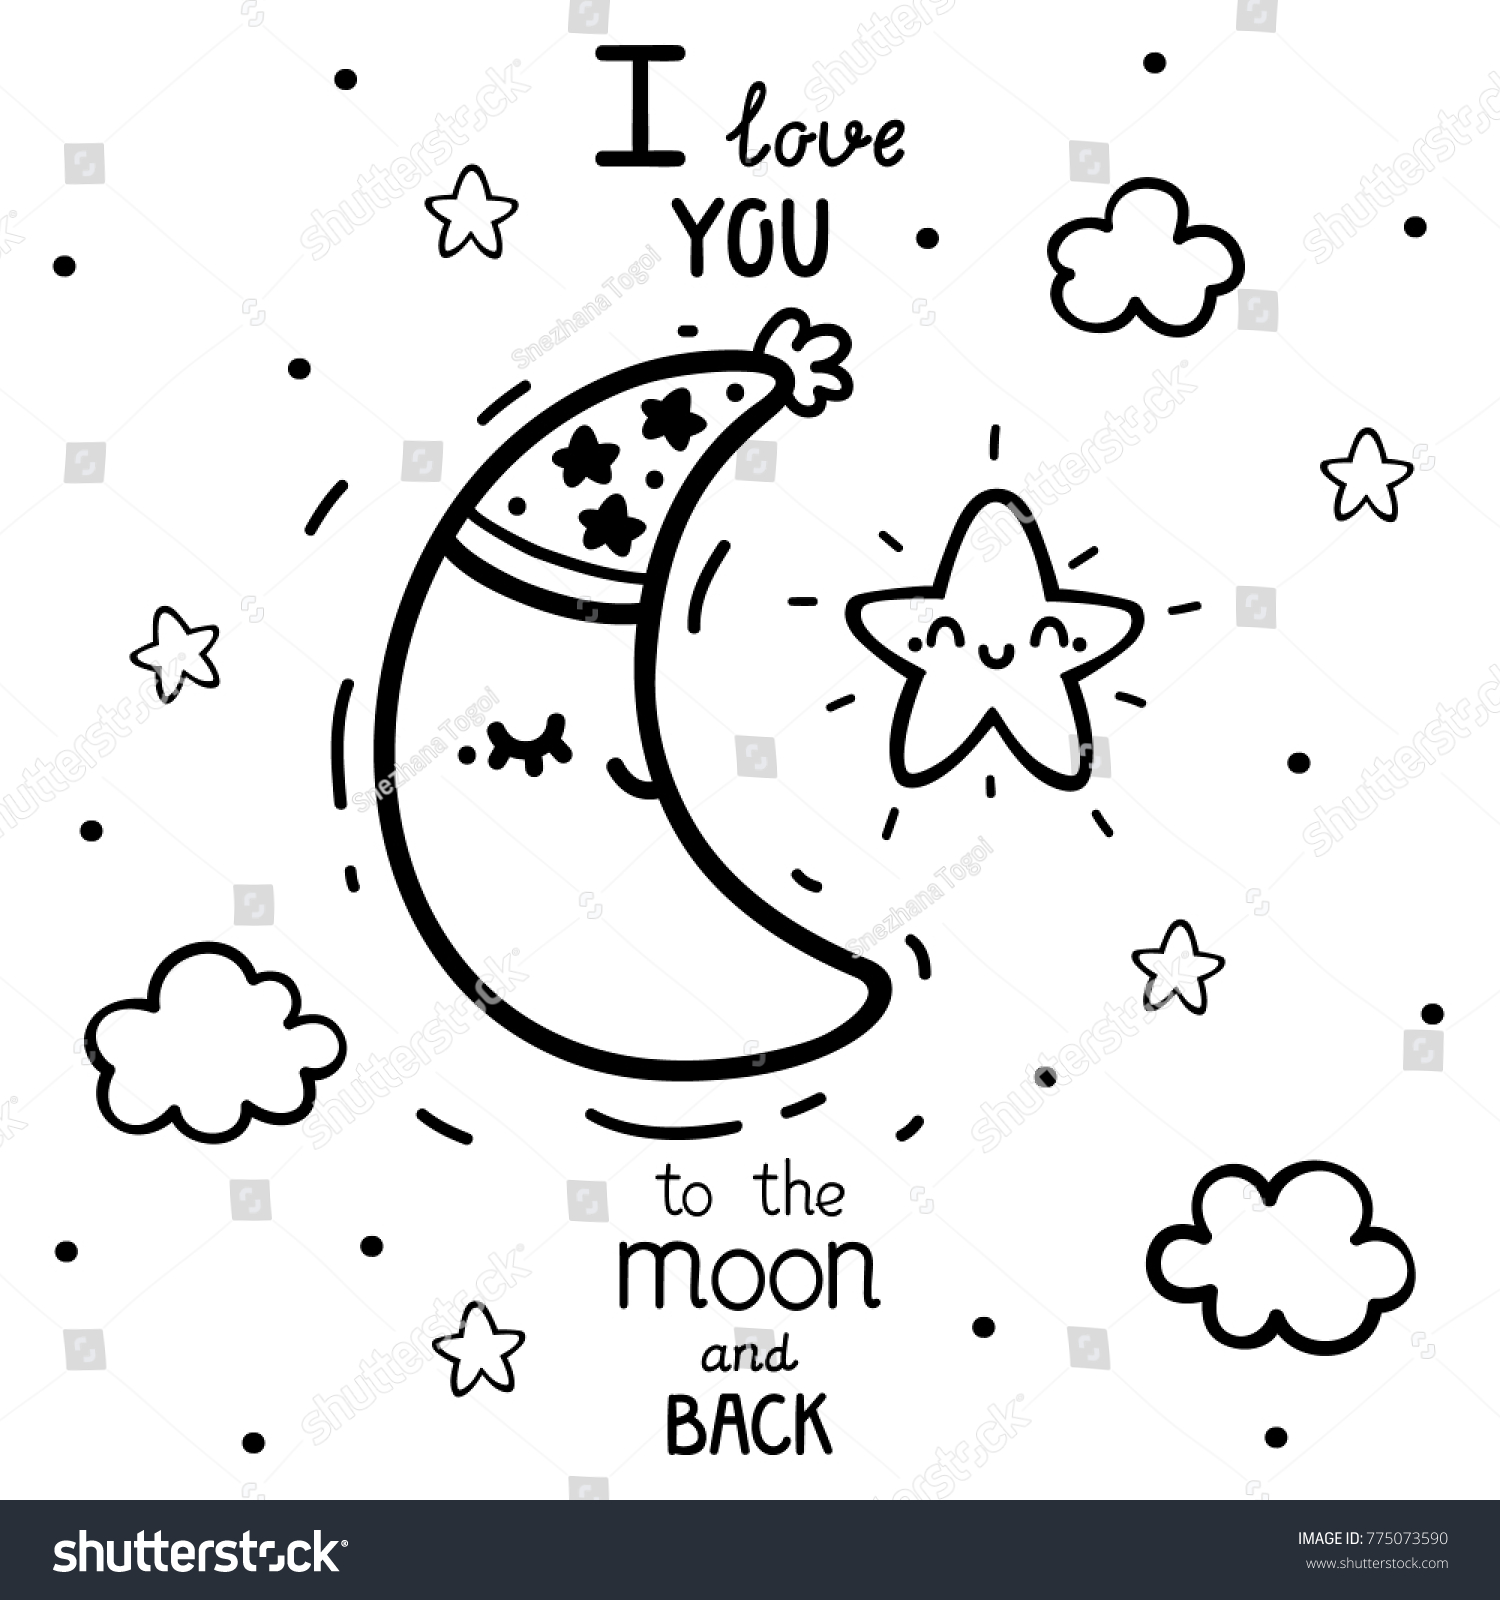 Coloring cute star waning crescent moon stock vector 775073590 coloring with cute star and waning crescent moon plus text i love to the moon biocorpaavc Gallery